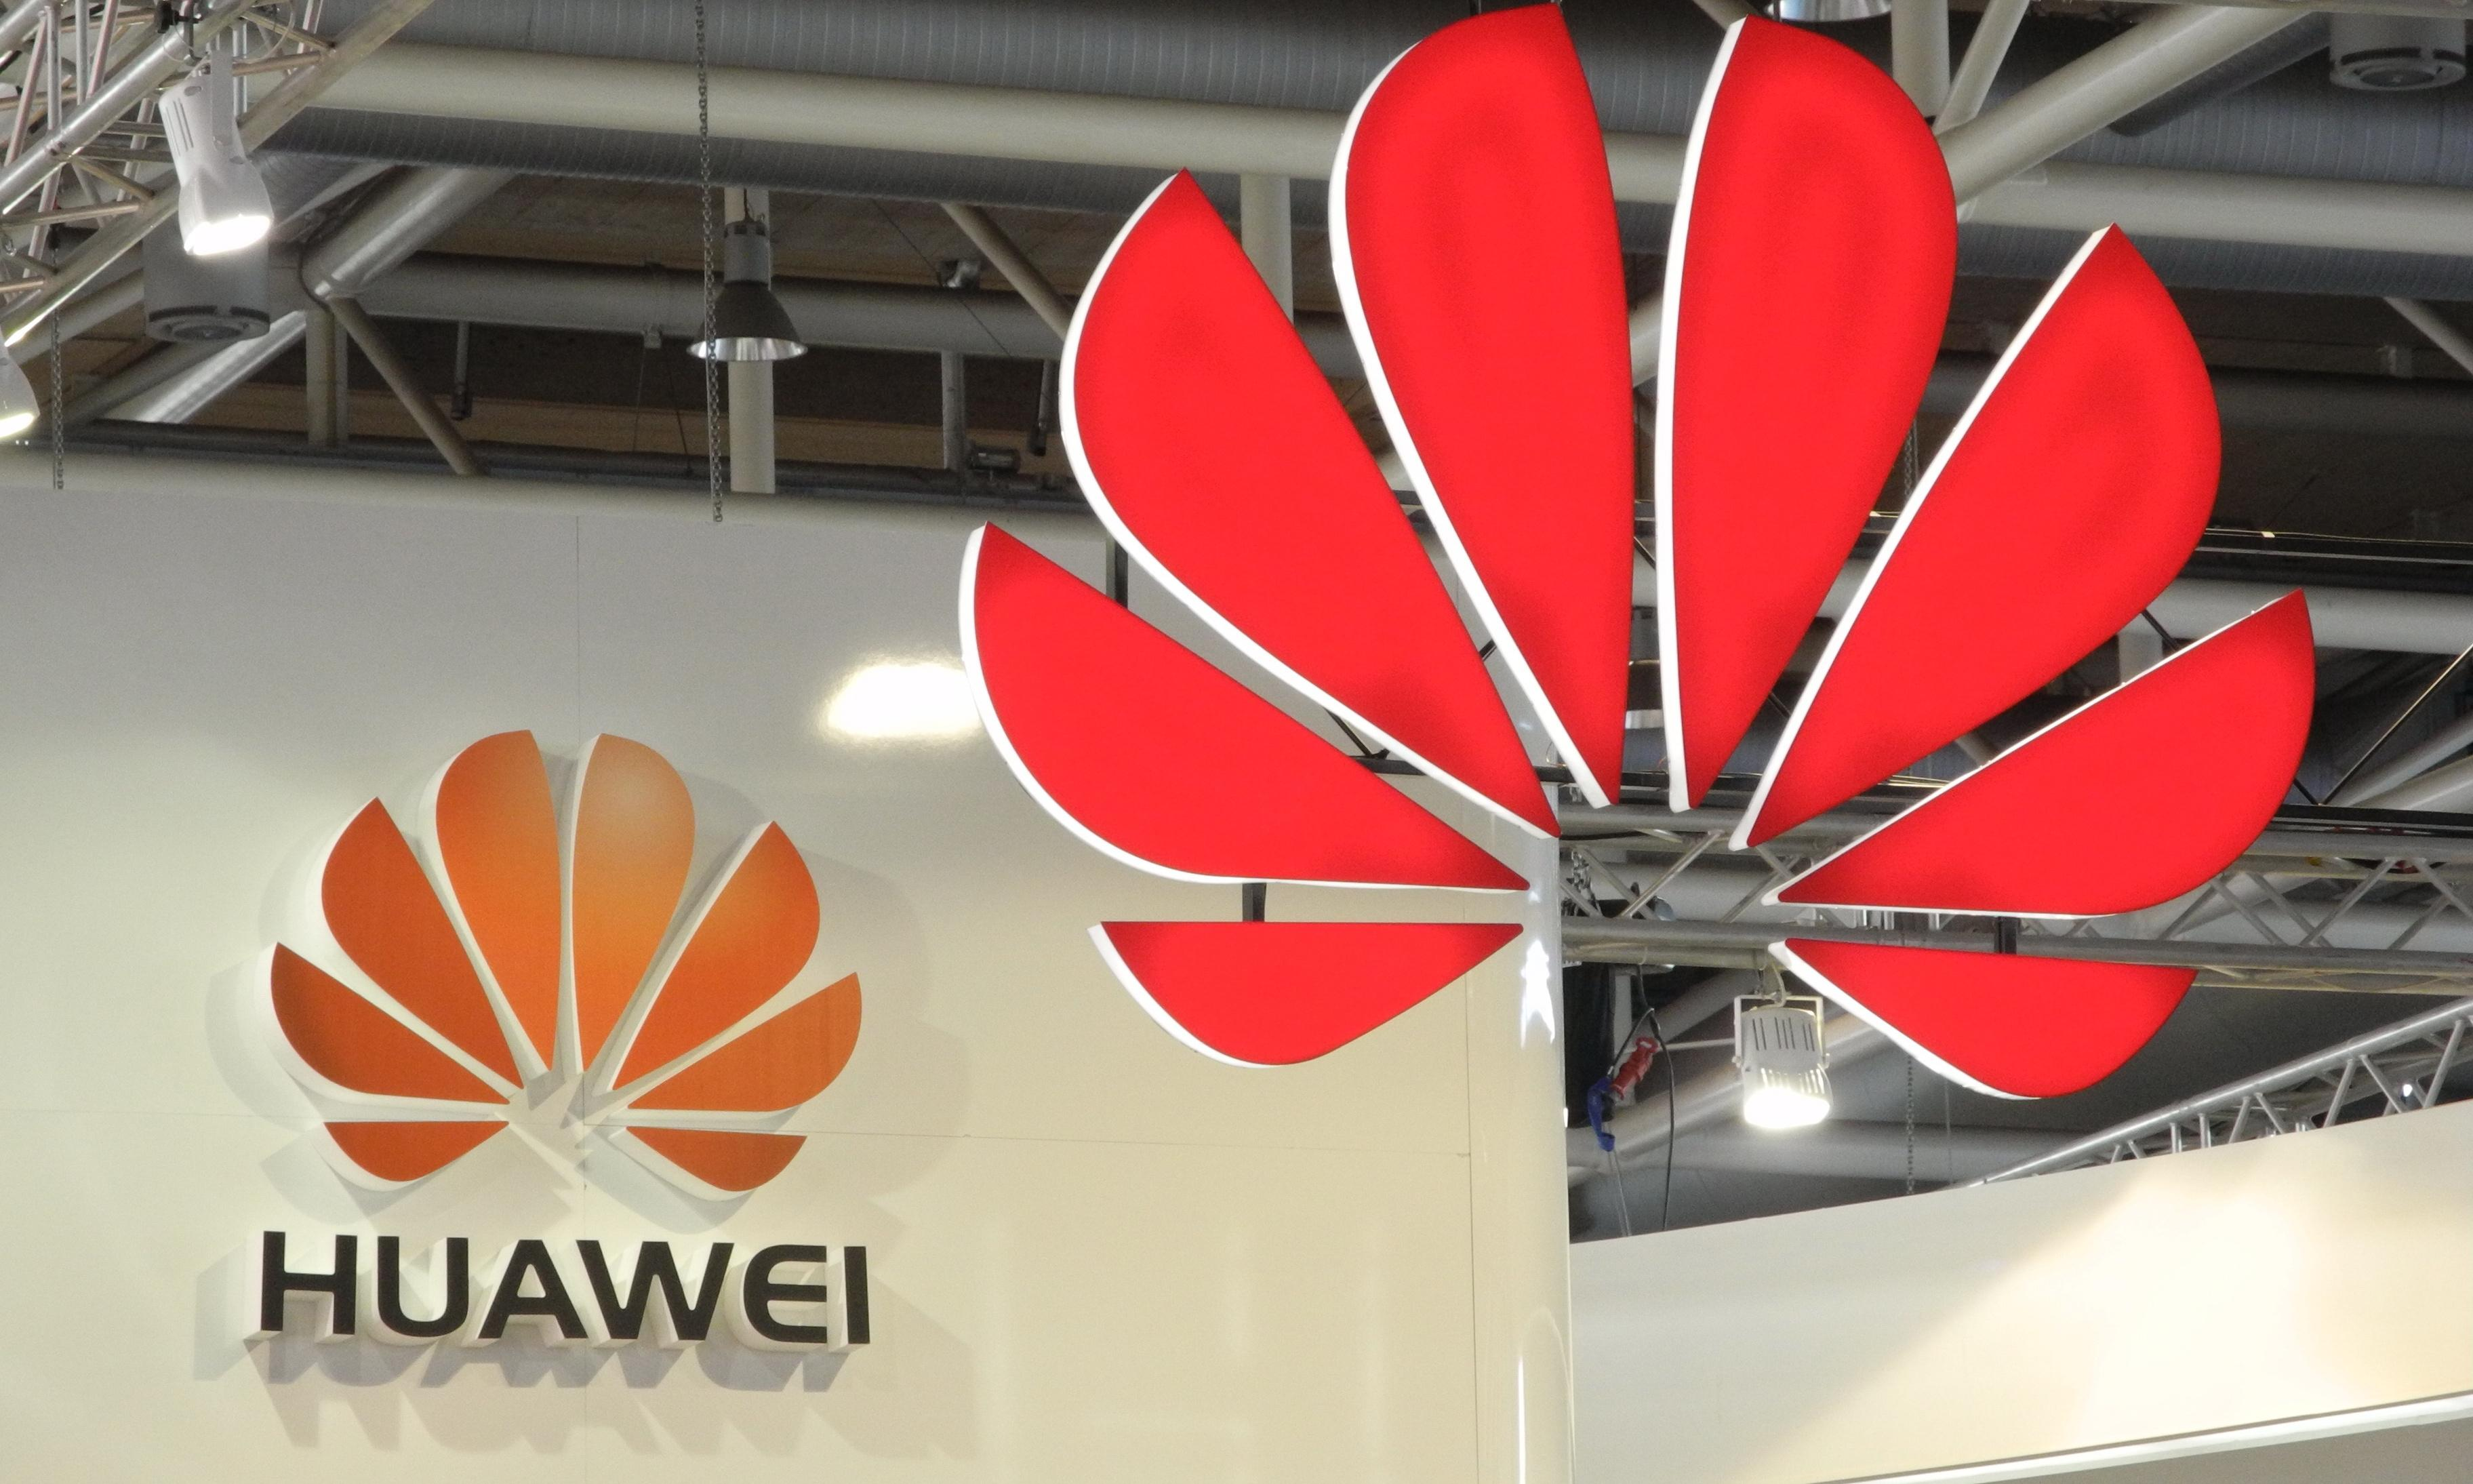 'There will be conflict': US has underestimated Huawei, says founder